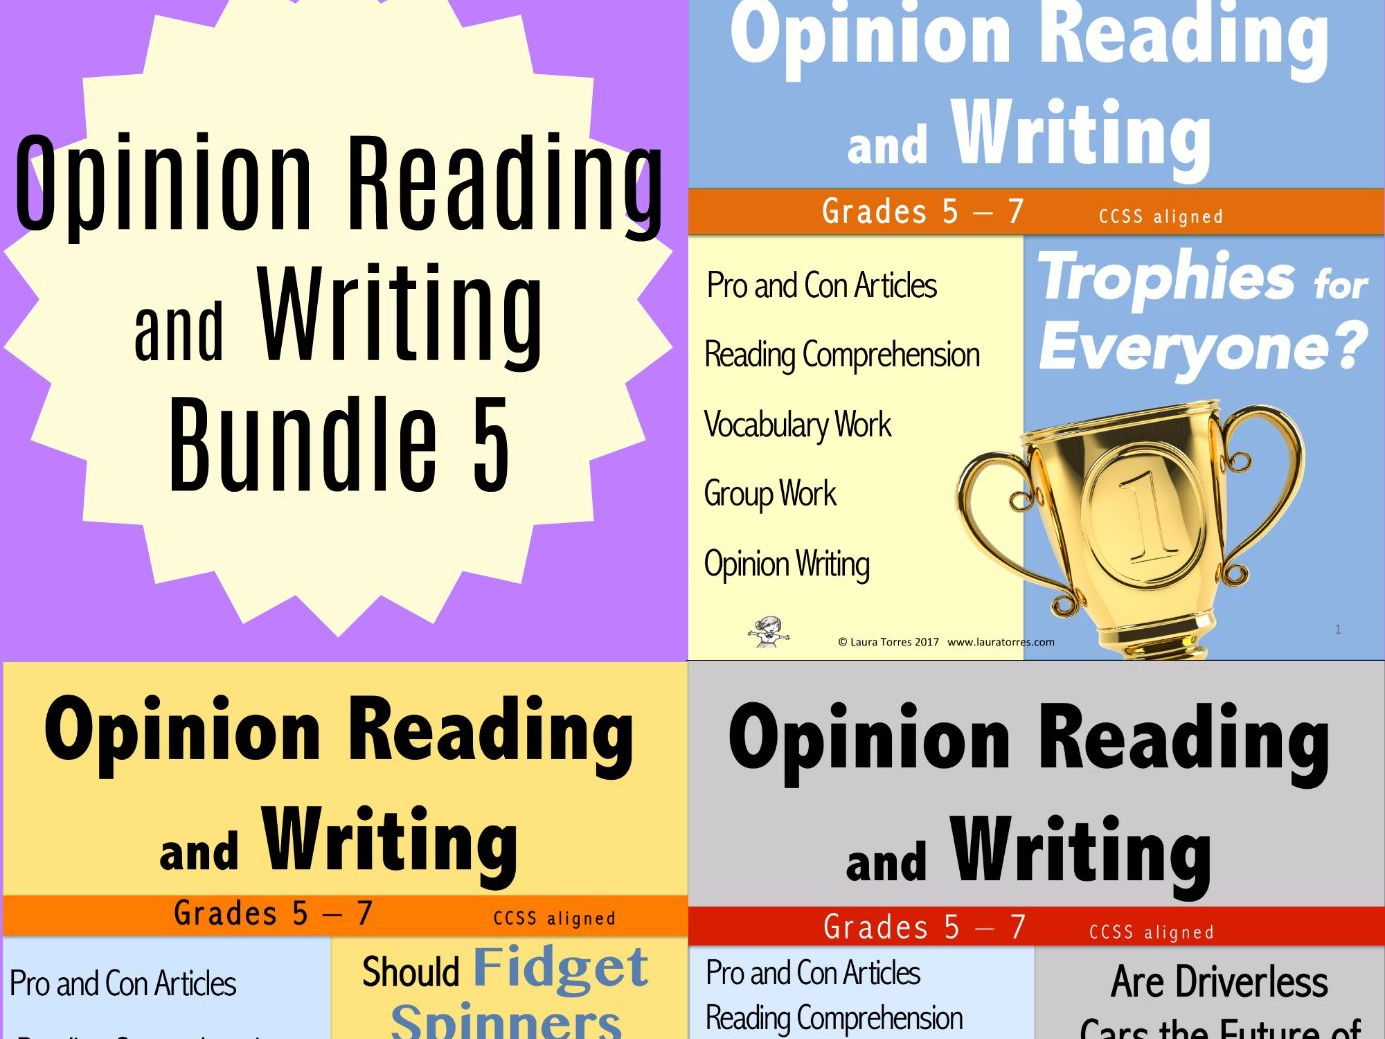 Opinion Reading and Writing Bundle 5